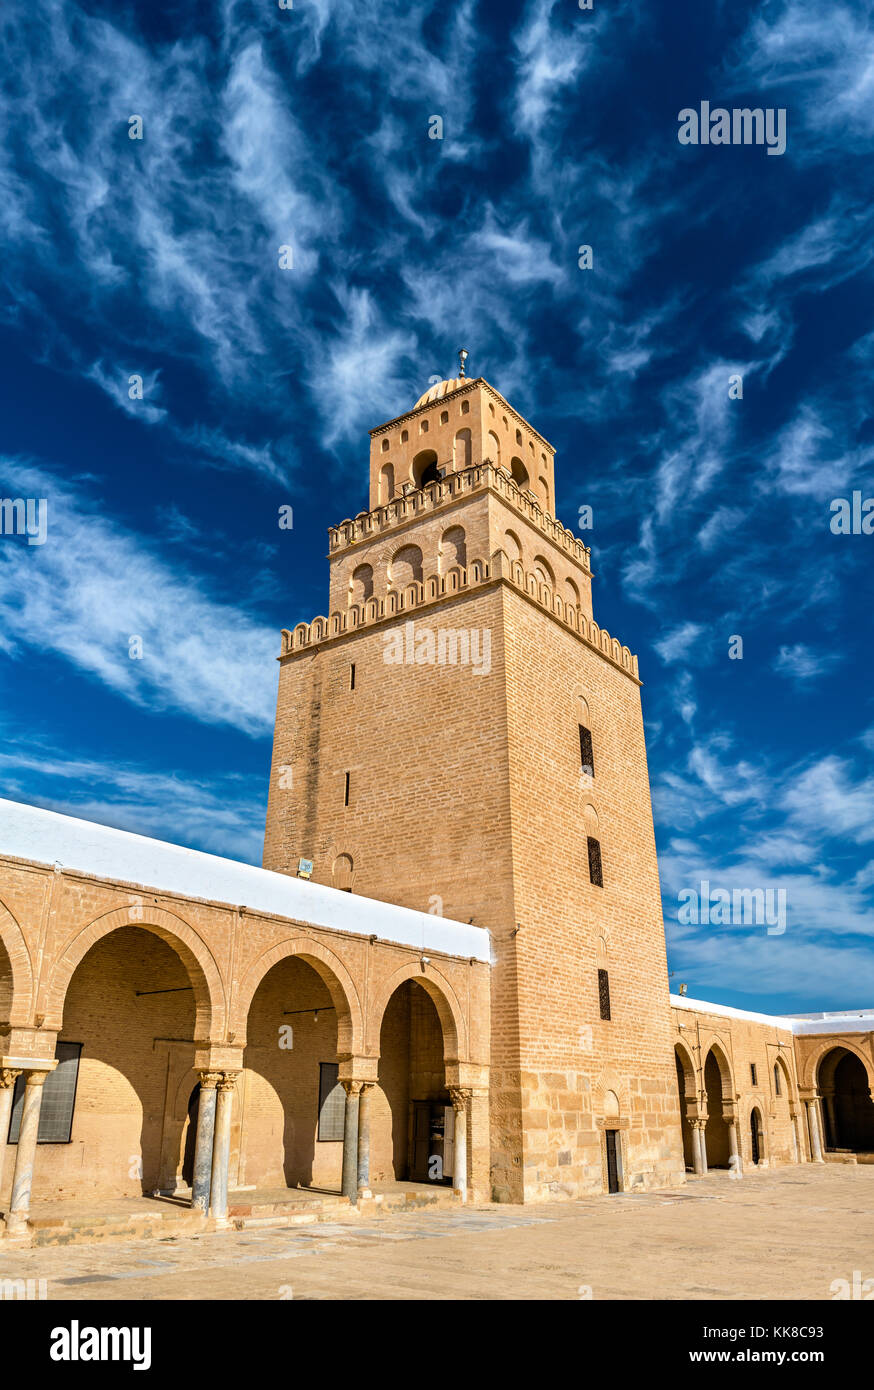 La grande mosquée de Kairouan en Tunisie Photo Stock